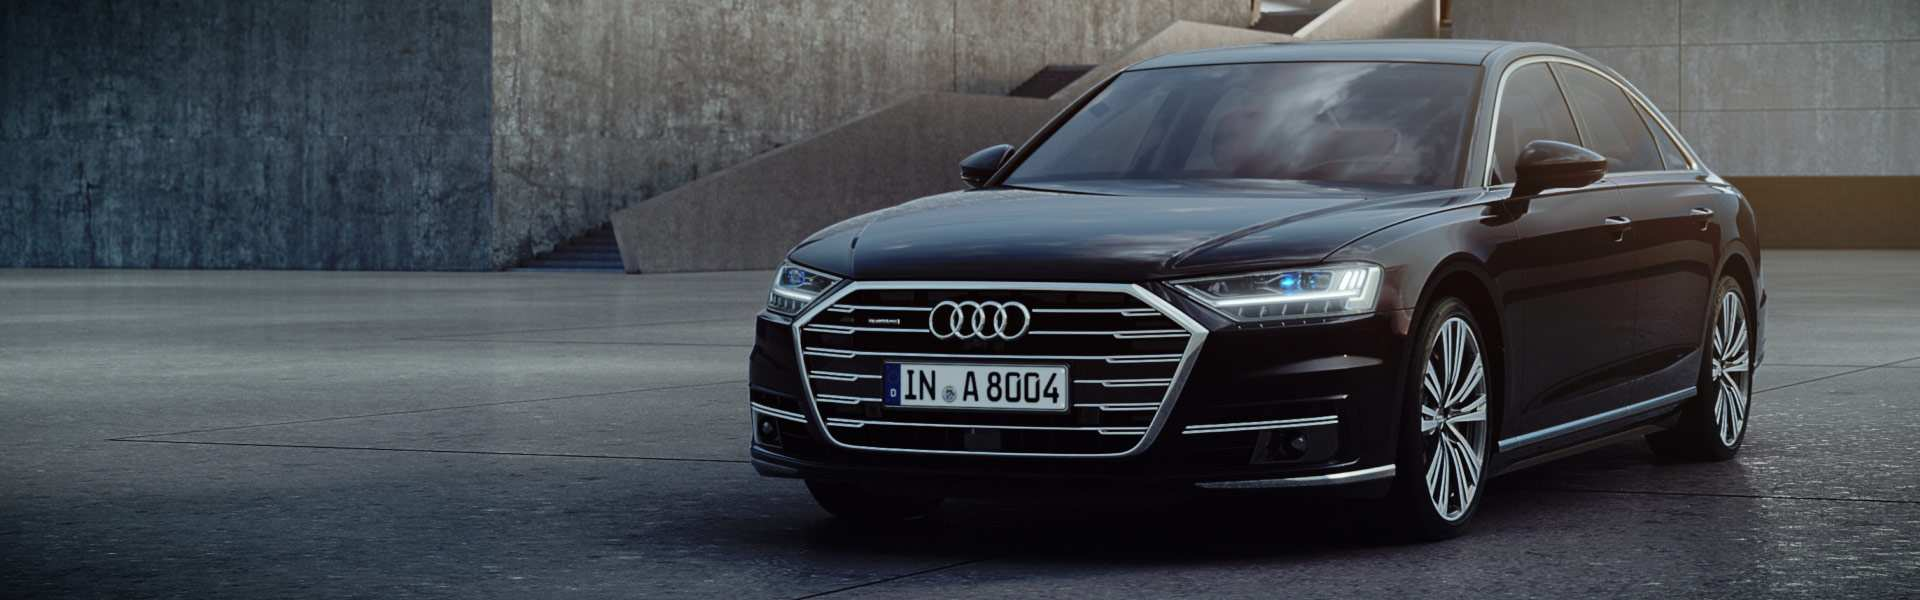 86 The Audi A8 Images